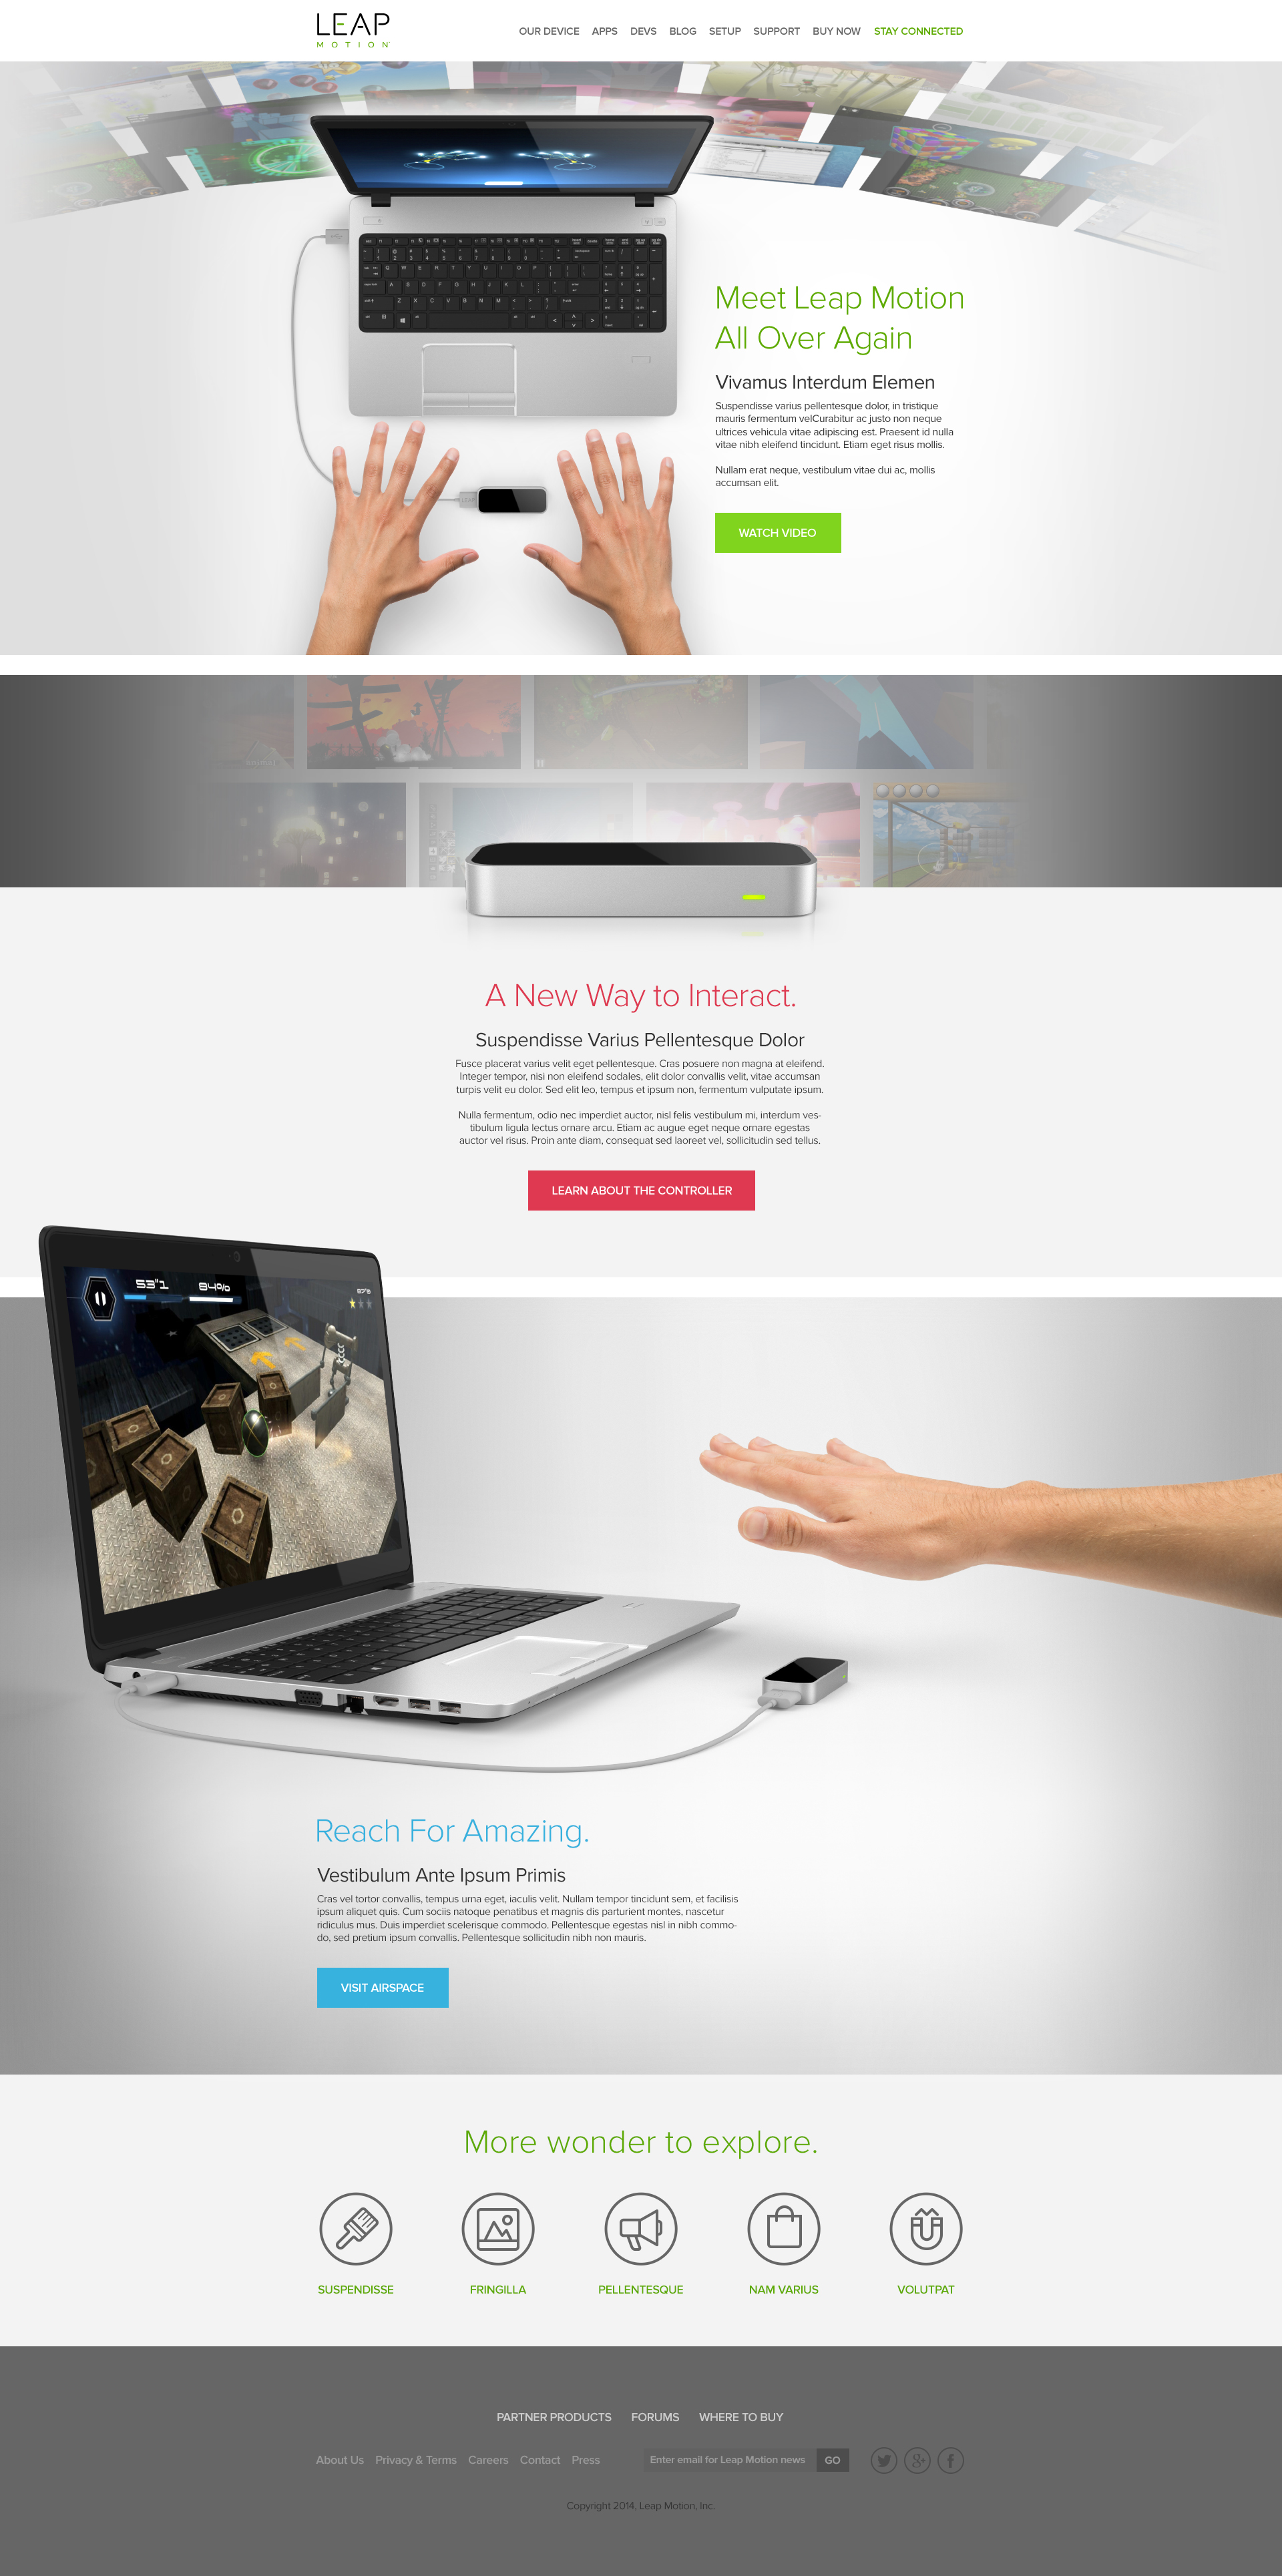 Leap_Motion_Homepage_01